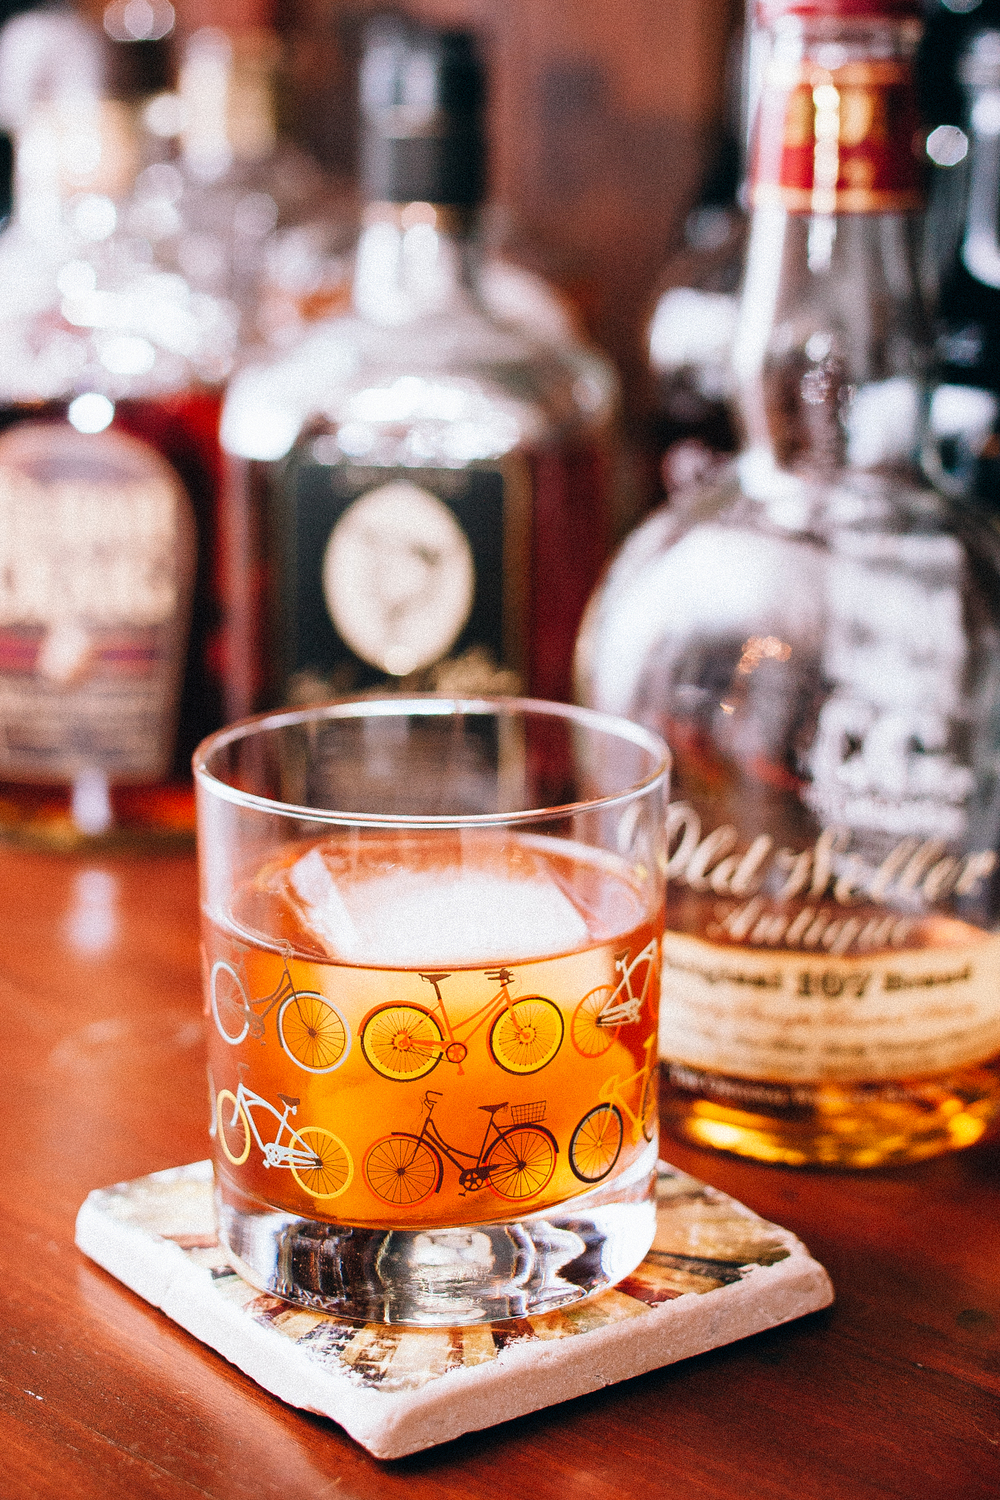 A slightly amped up Old Fashioned cocktail with Weller 107